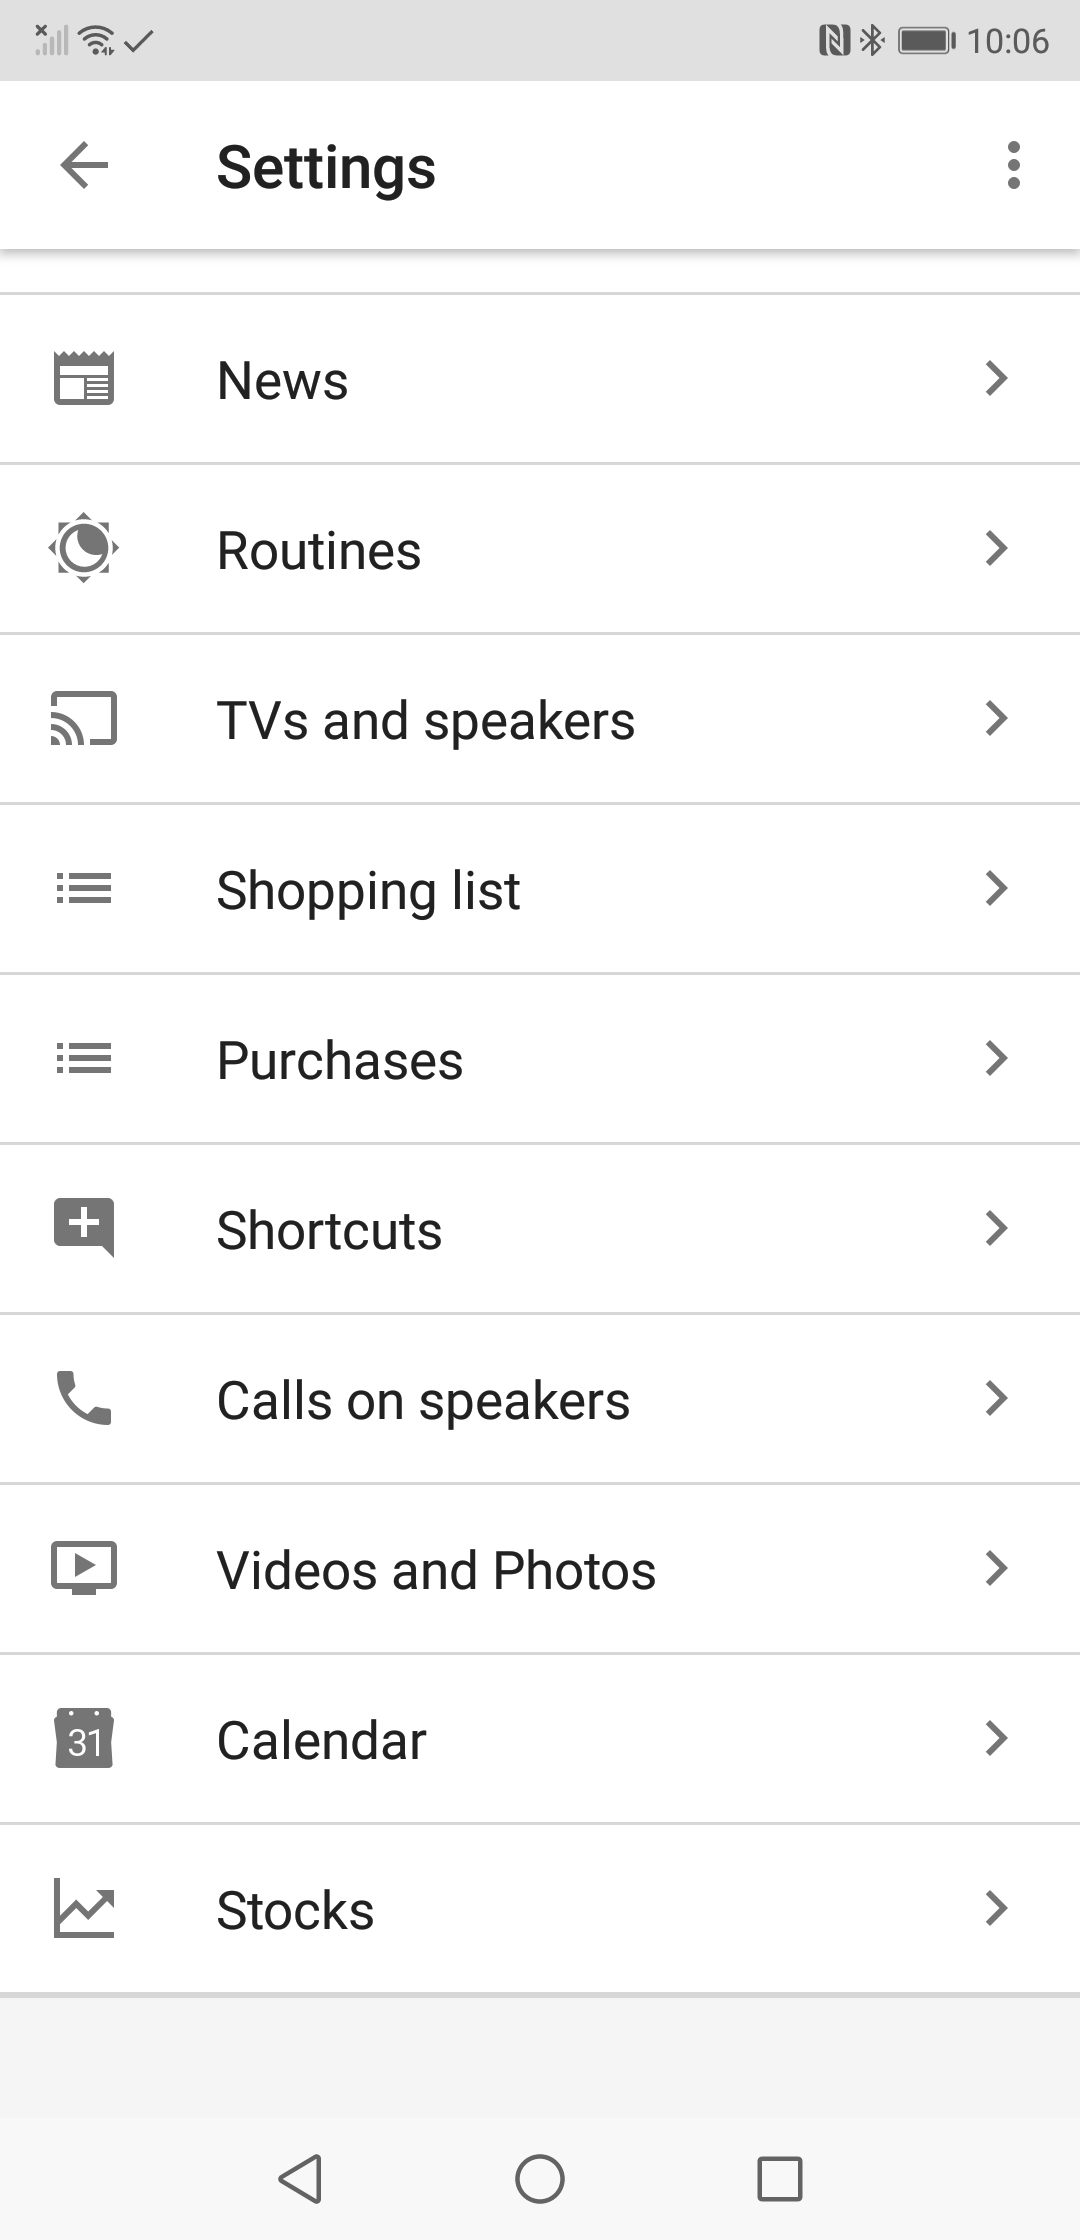 google assistant rolling out stocks to its list of services